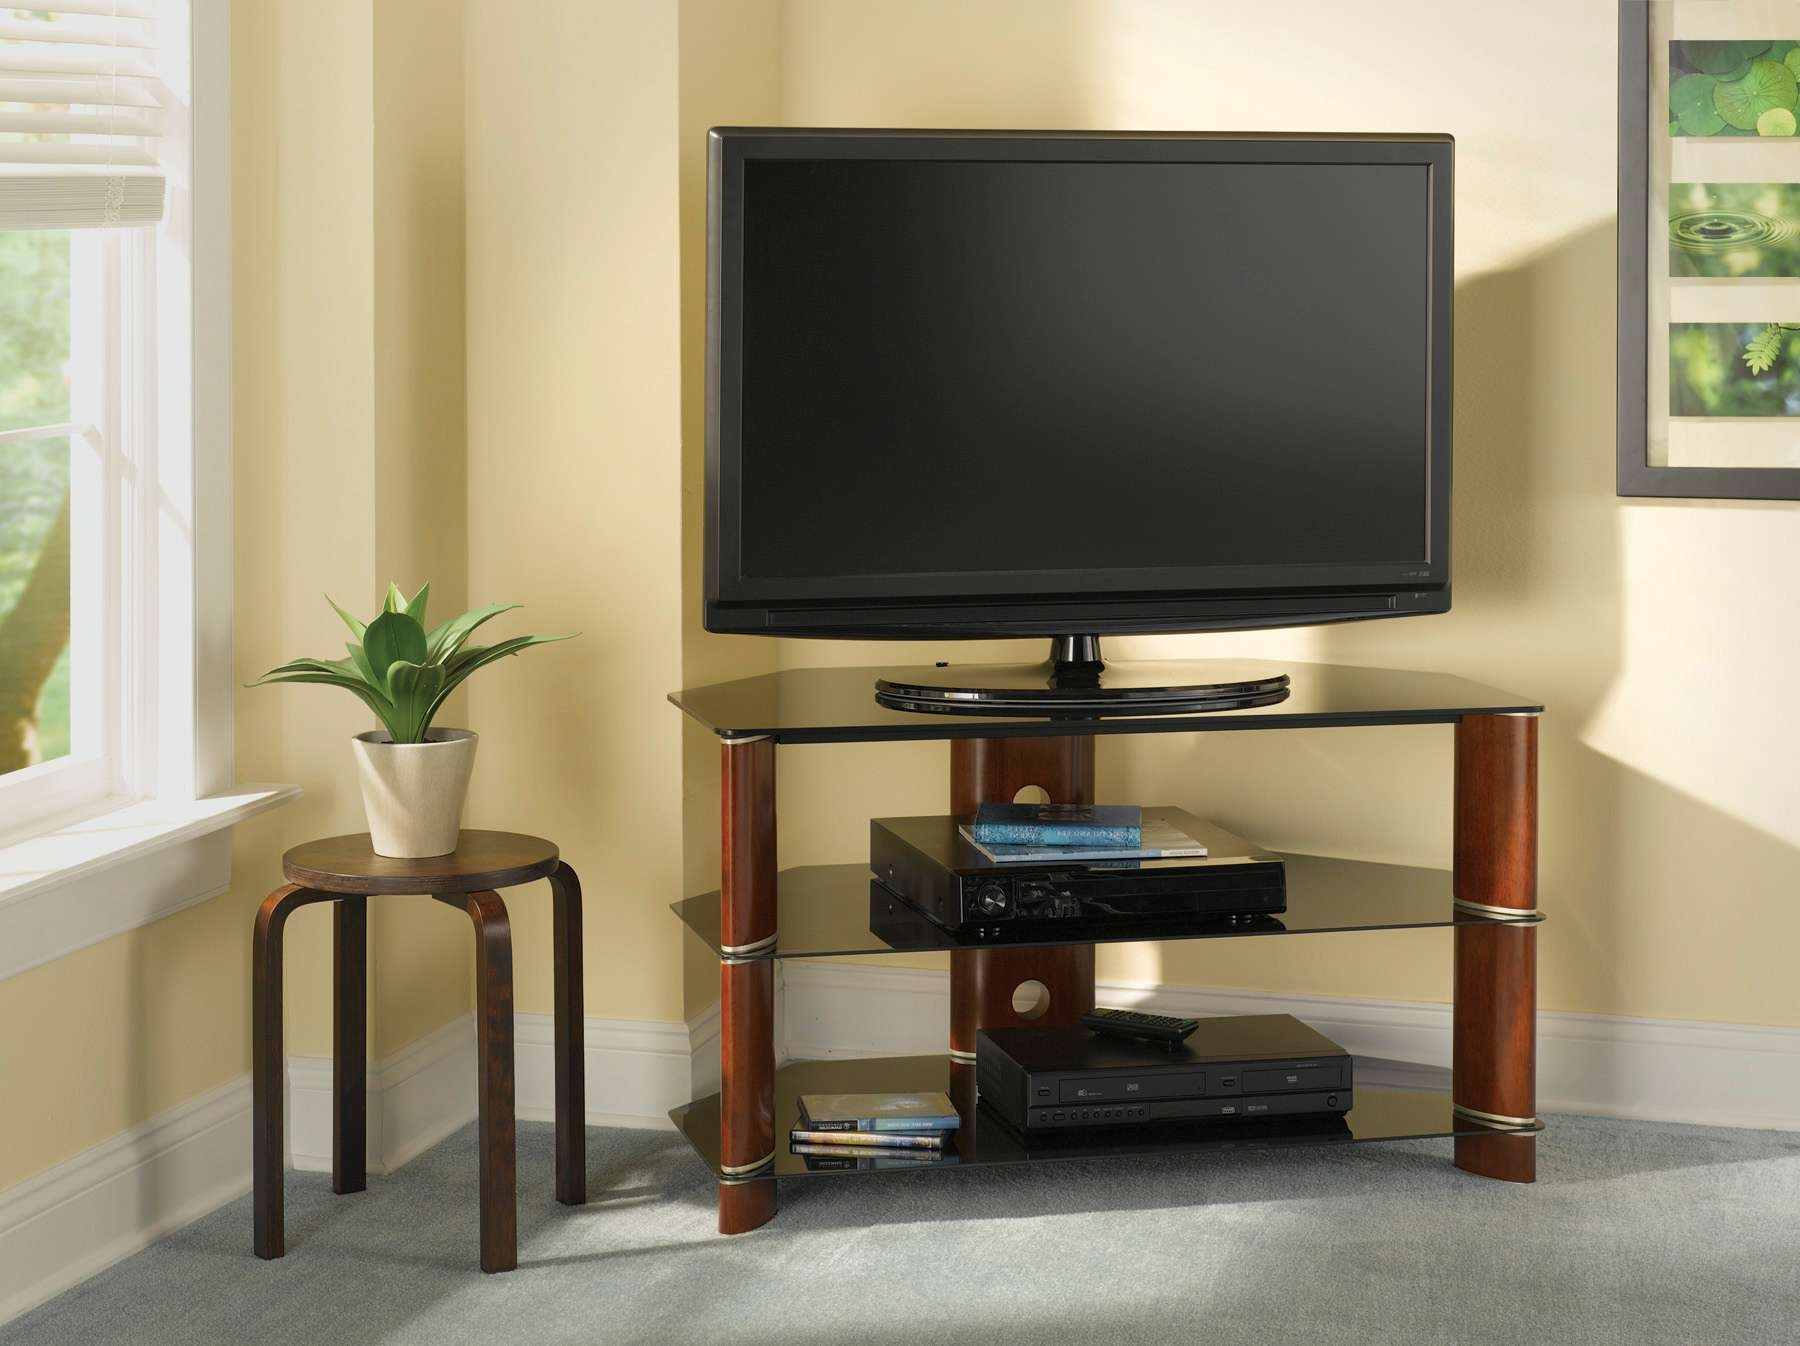 Outstanding Modern Corner Tv Stand And Contemporary Trends Images Regarding Tv Stands For Corners (View 15 of 15)